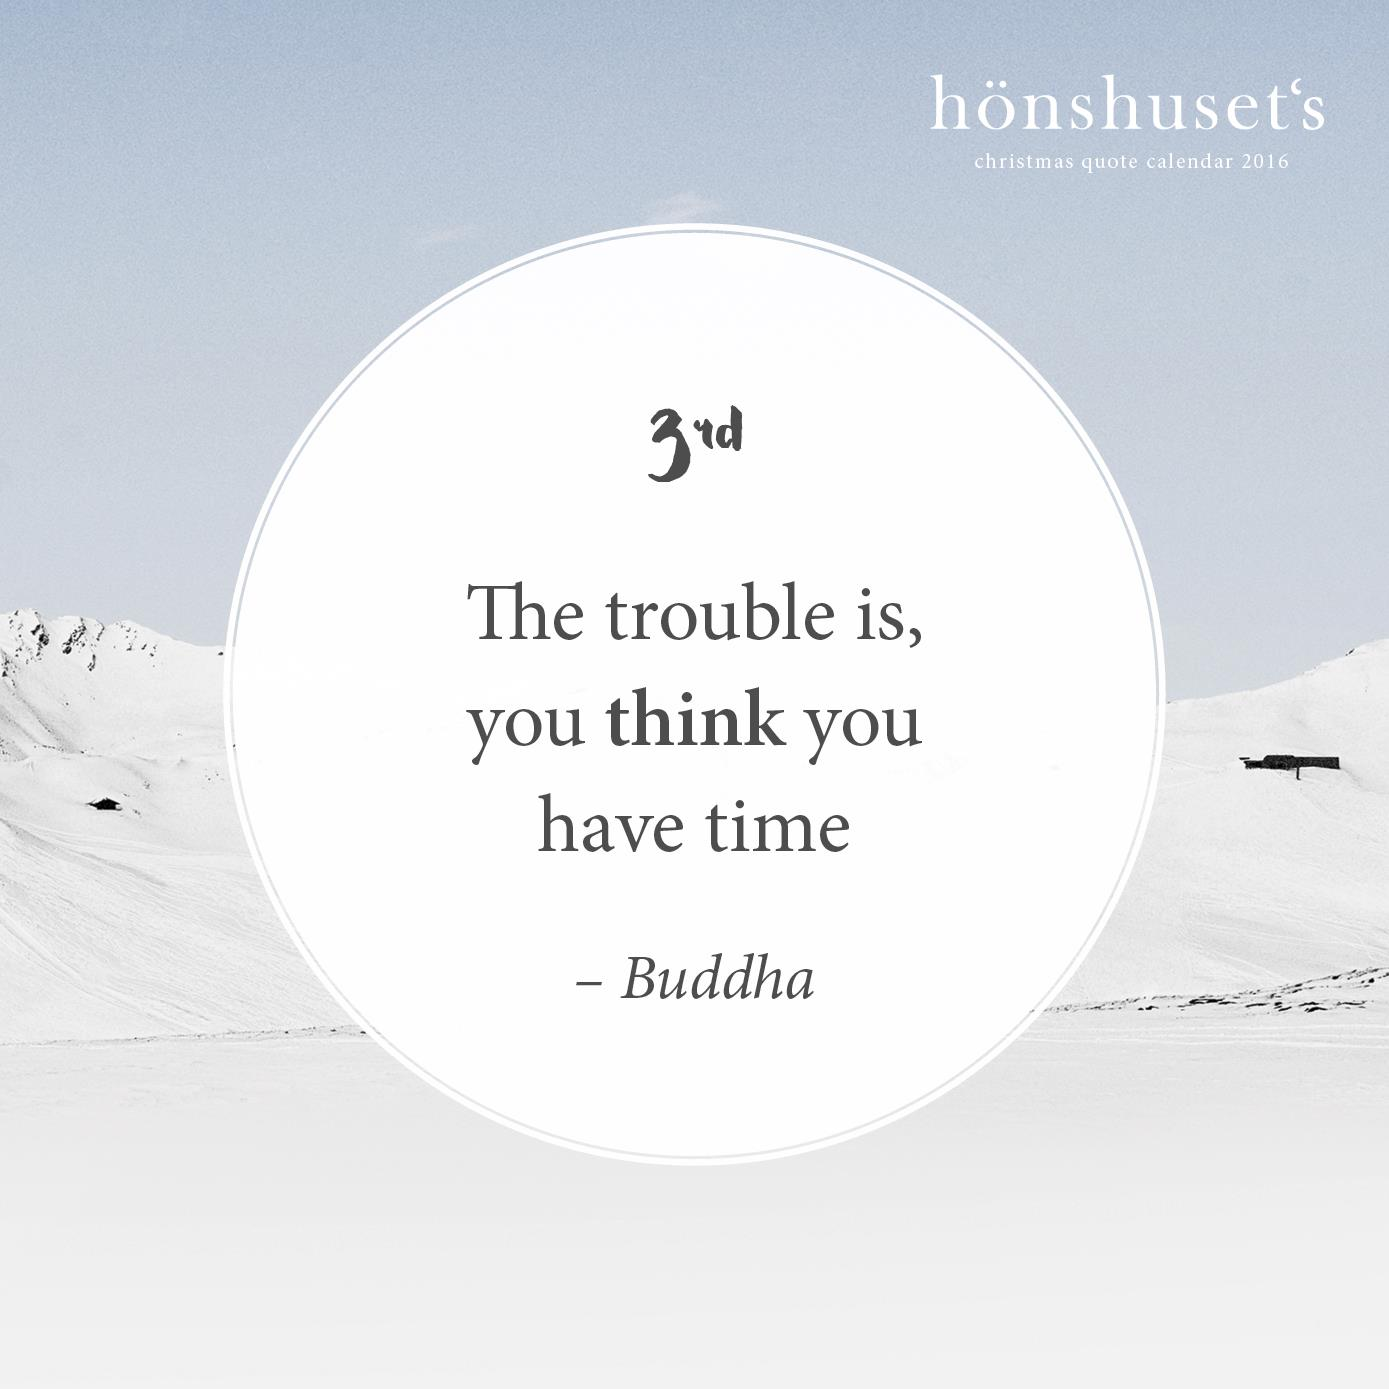 The trouble is, you think you have time – Buddha